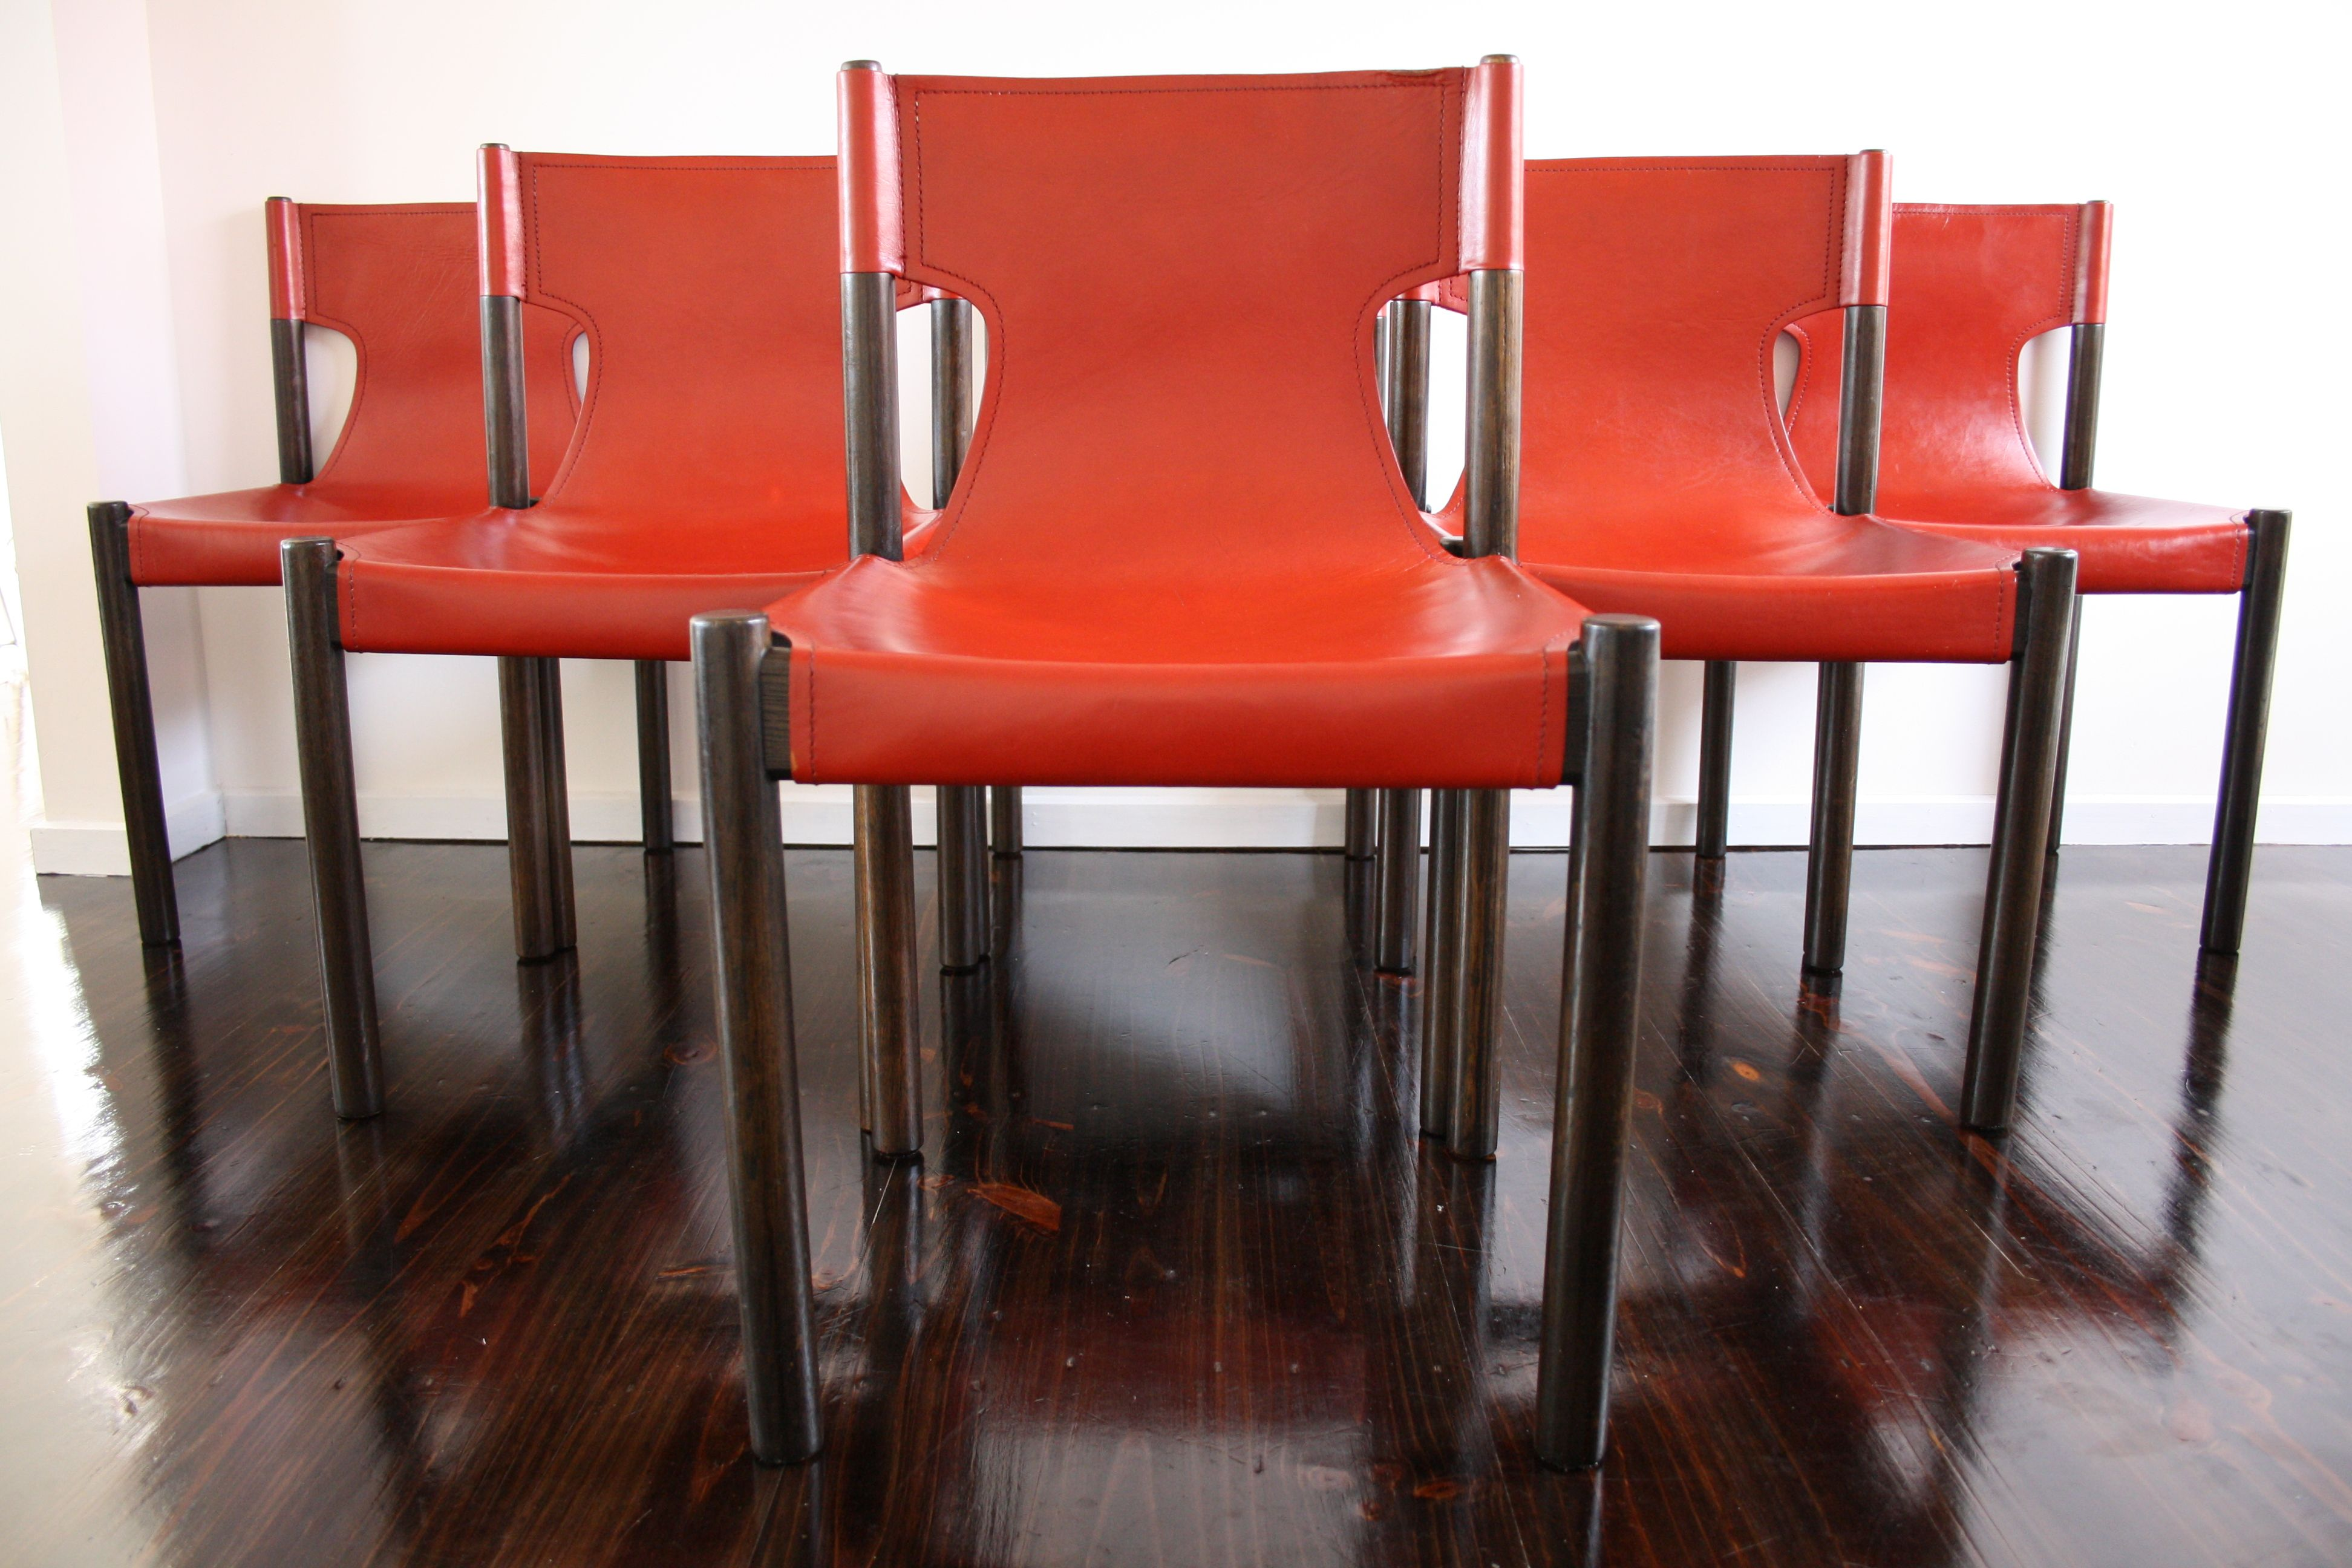 Red Leather Dining Room Chairs Fler Mid Century Red Leather Slingback Dining Chairs Retro Vintage